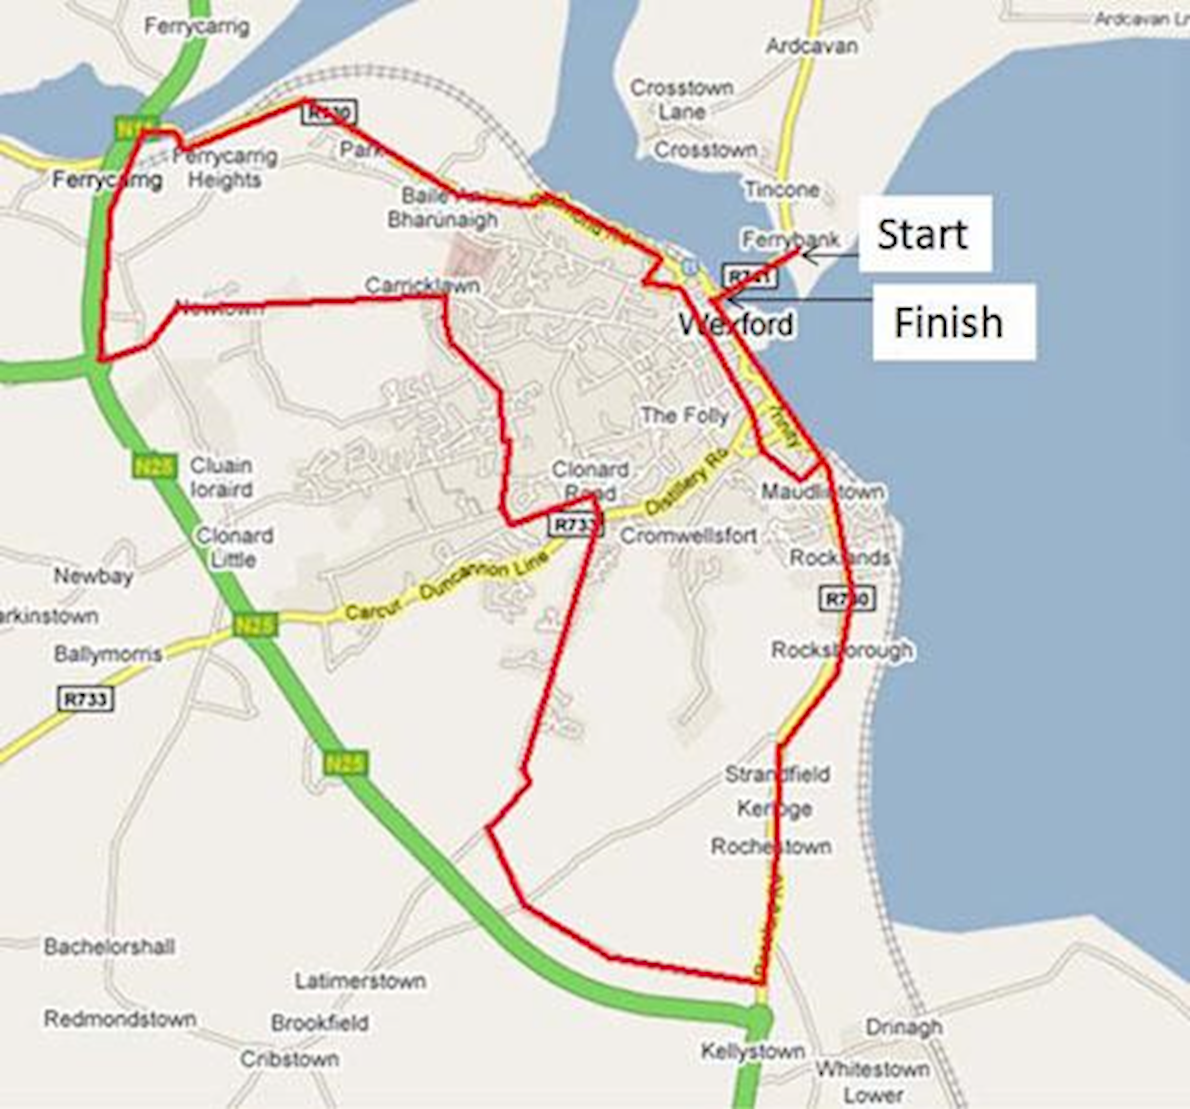 Wexford marathon Route Map